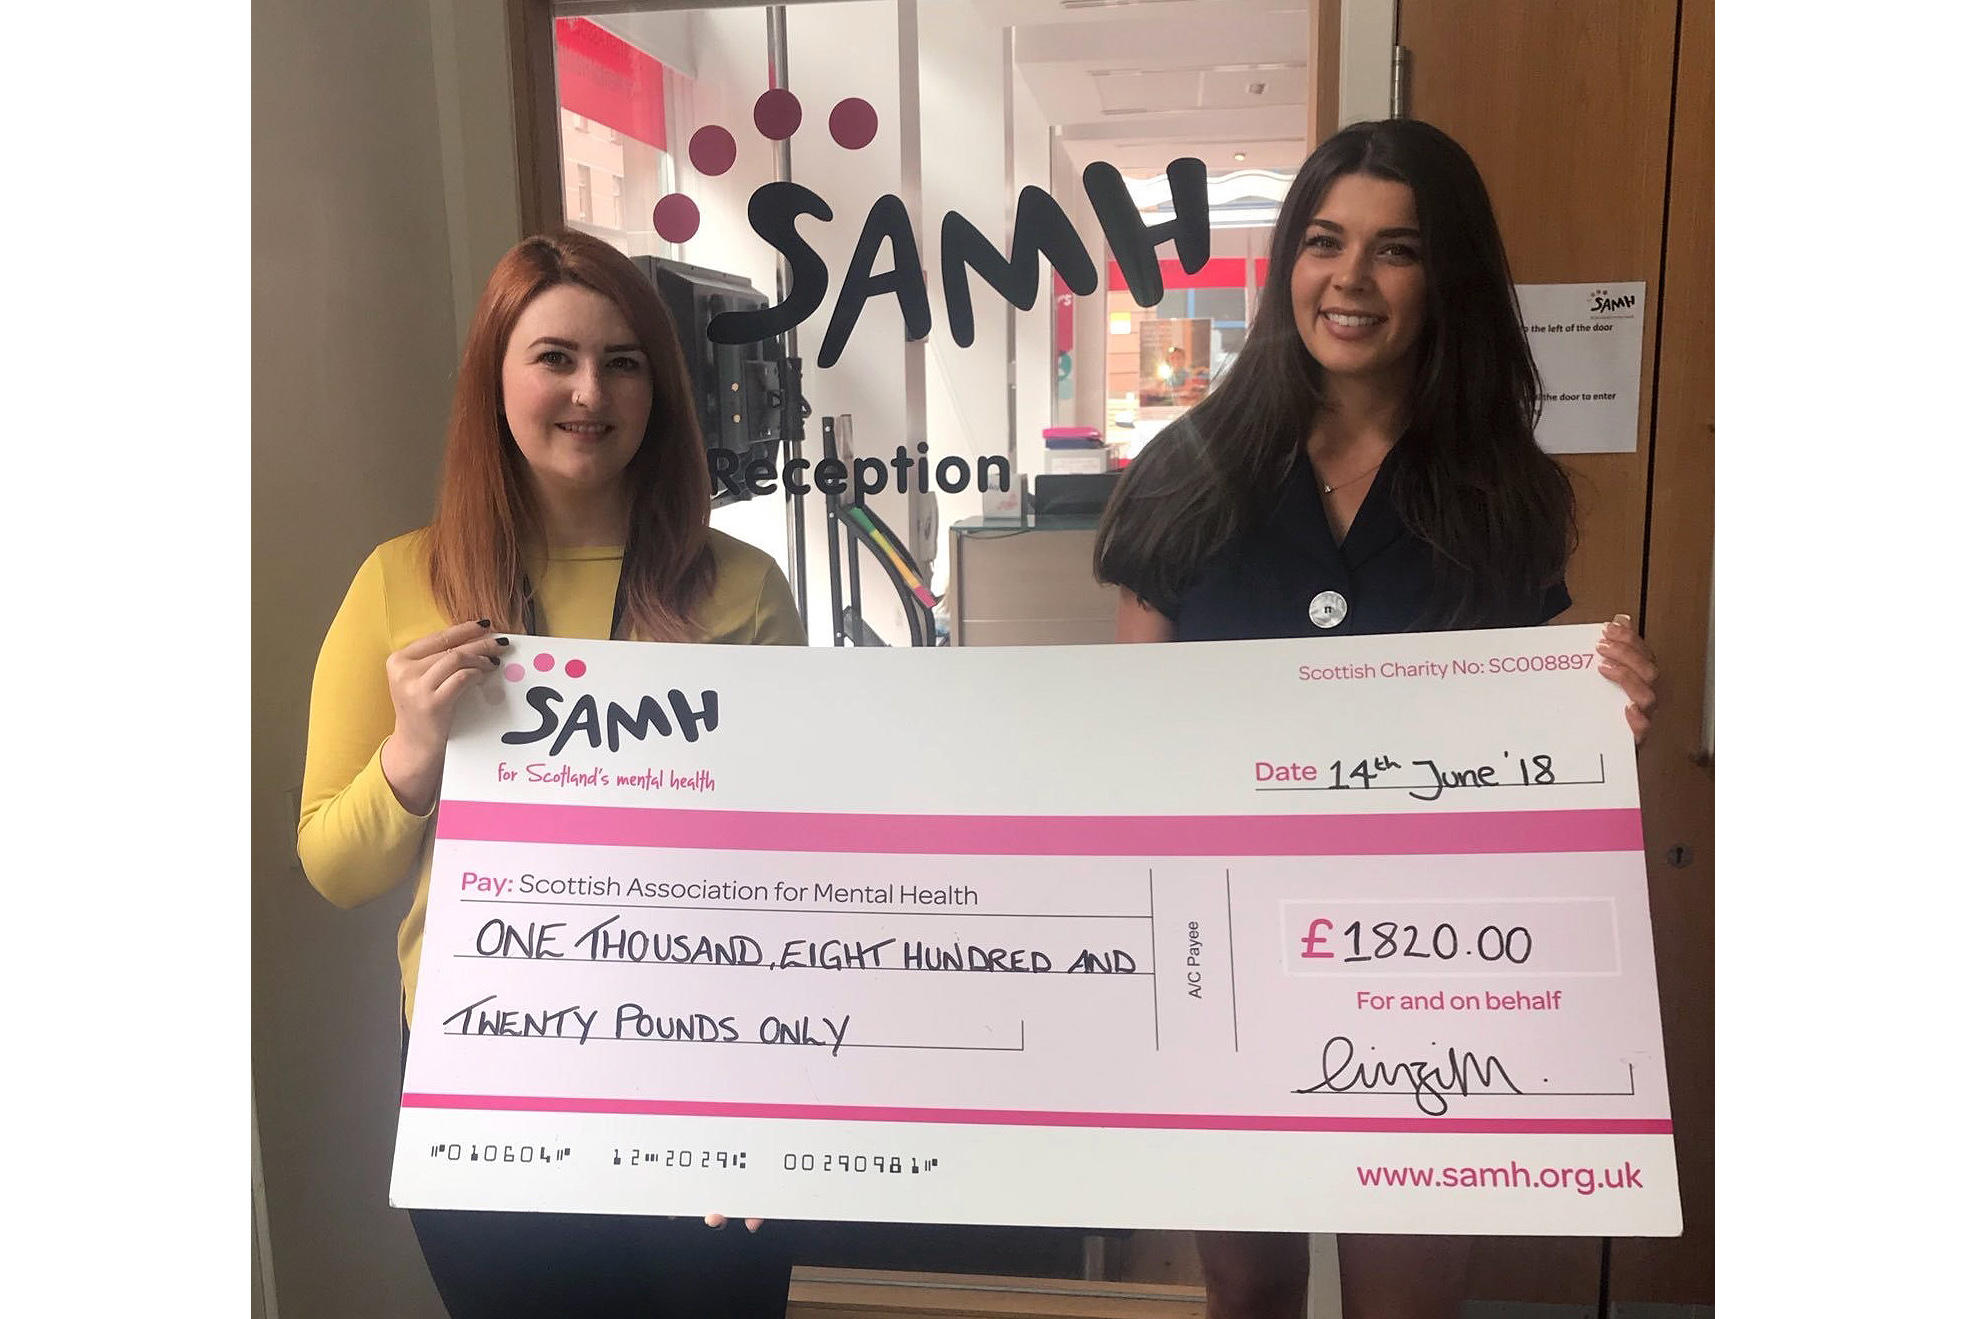 Miss Scotland Linzi McLelland presenting a cheque to the Scottish Association for Mental Health (SAMH) earlier this year